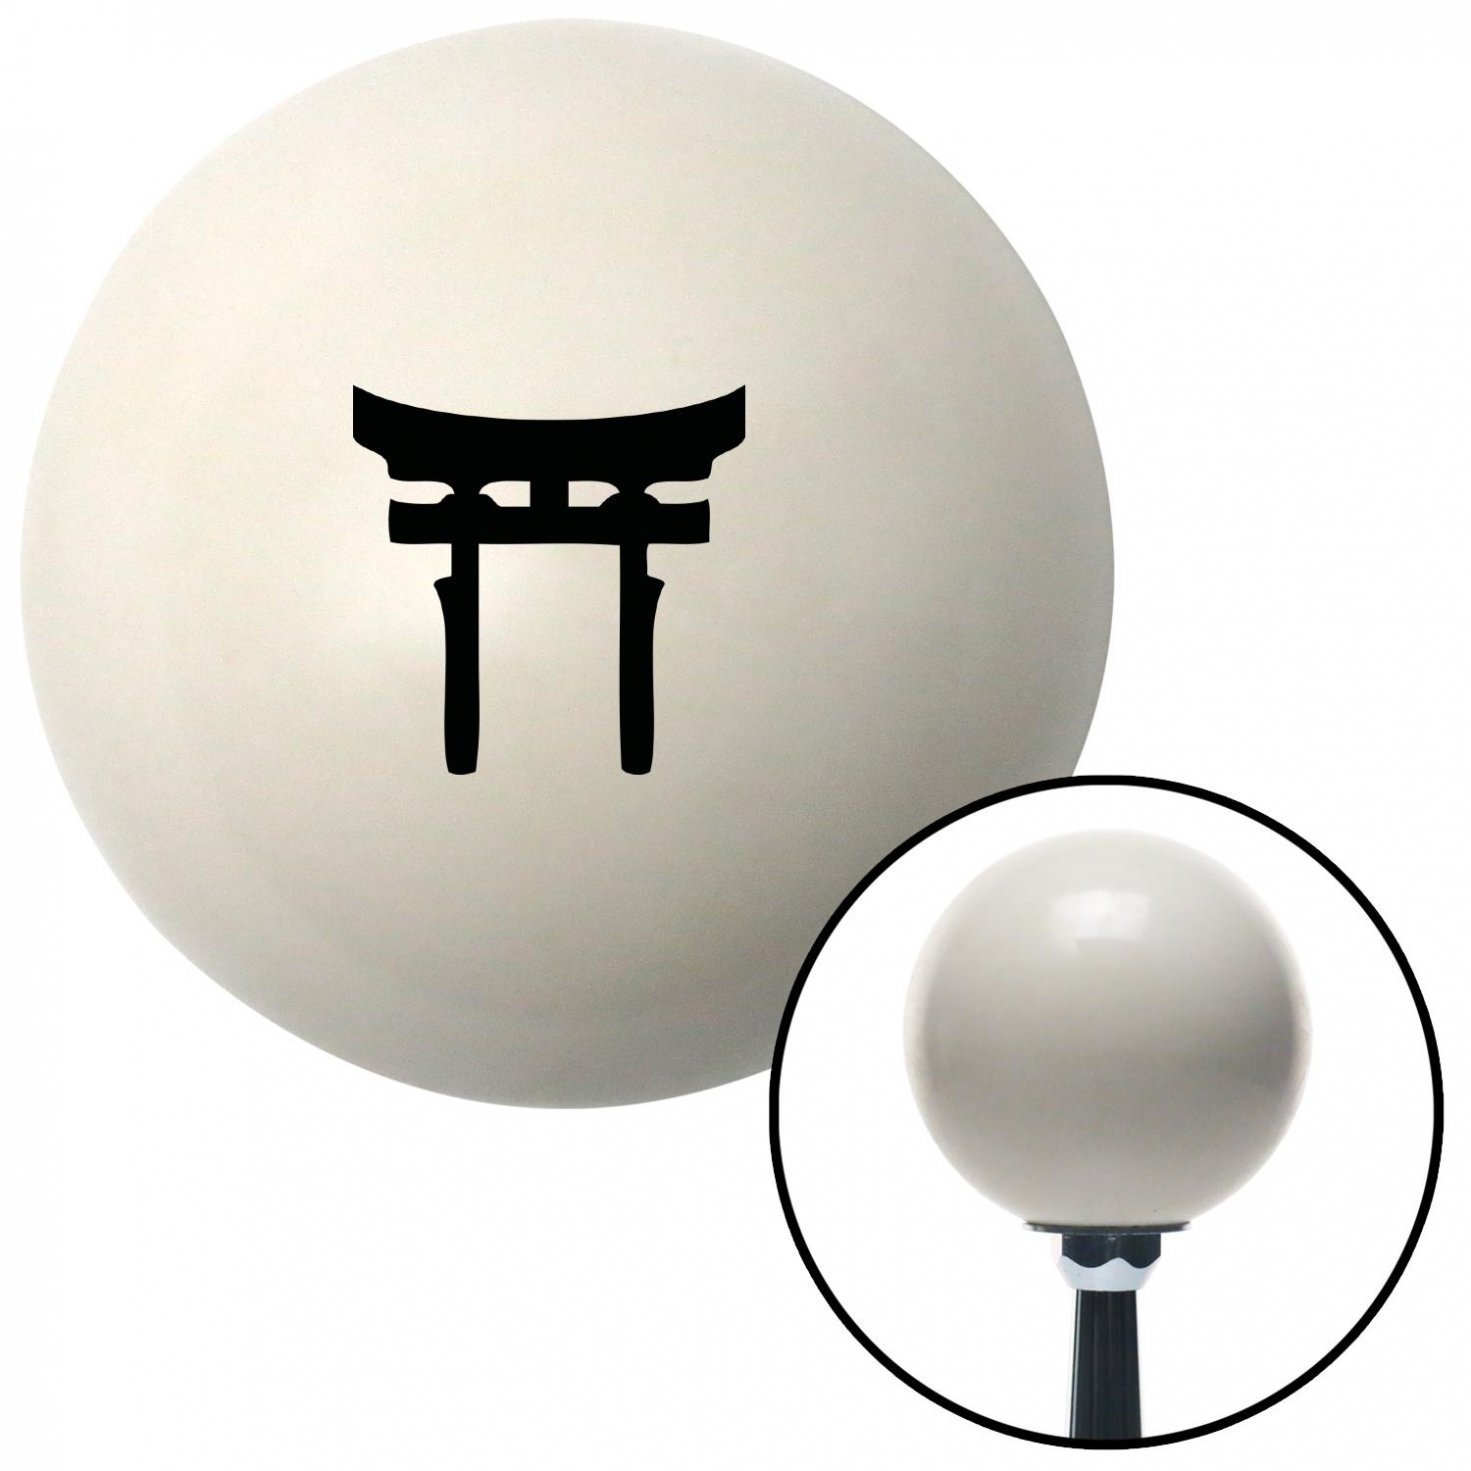 American Shifter 32738 Ivory Shift Knob with 16mm x 1.5 Insert Black Torii